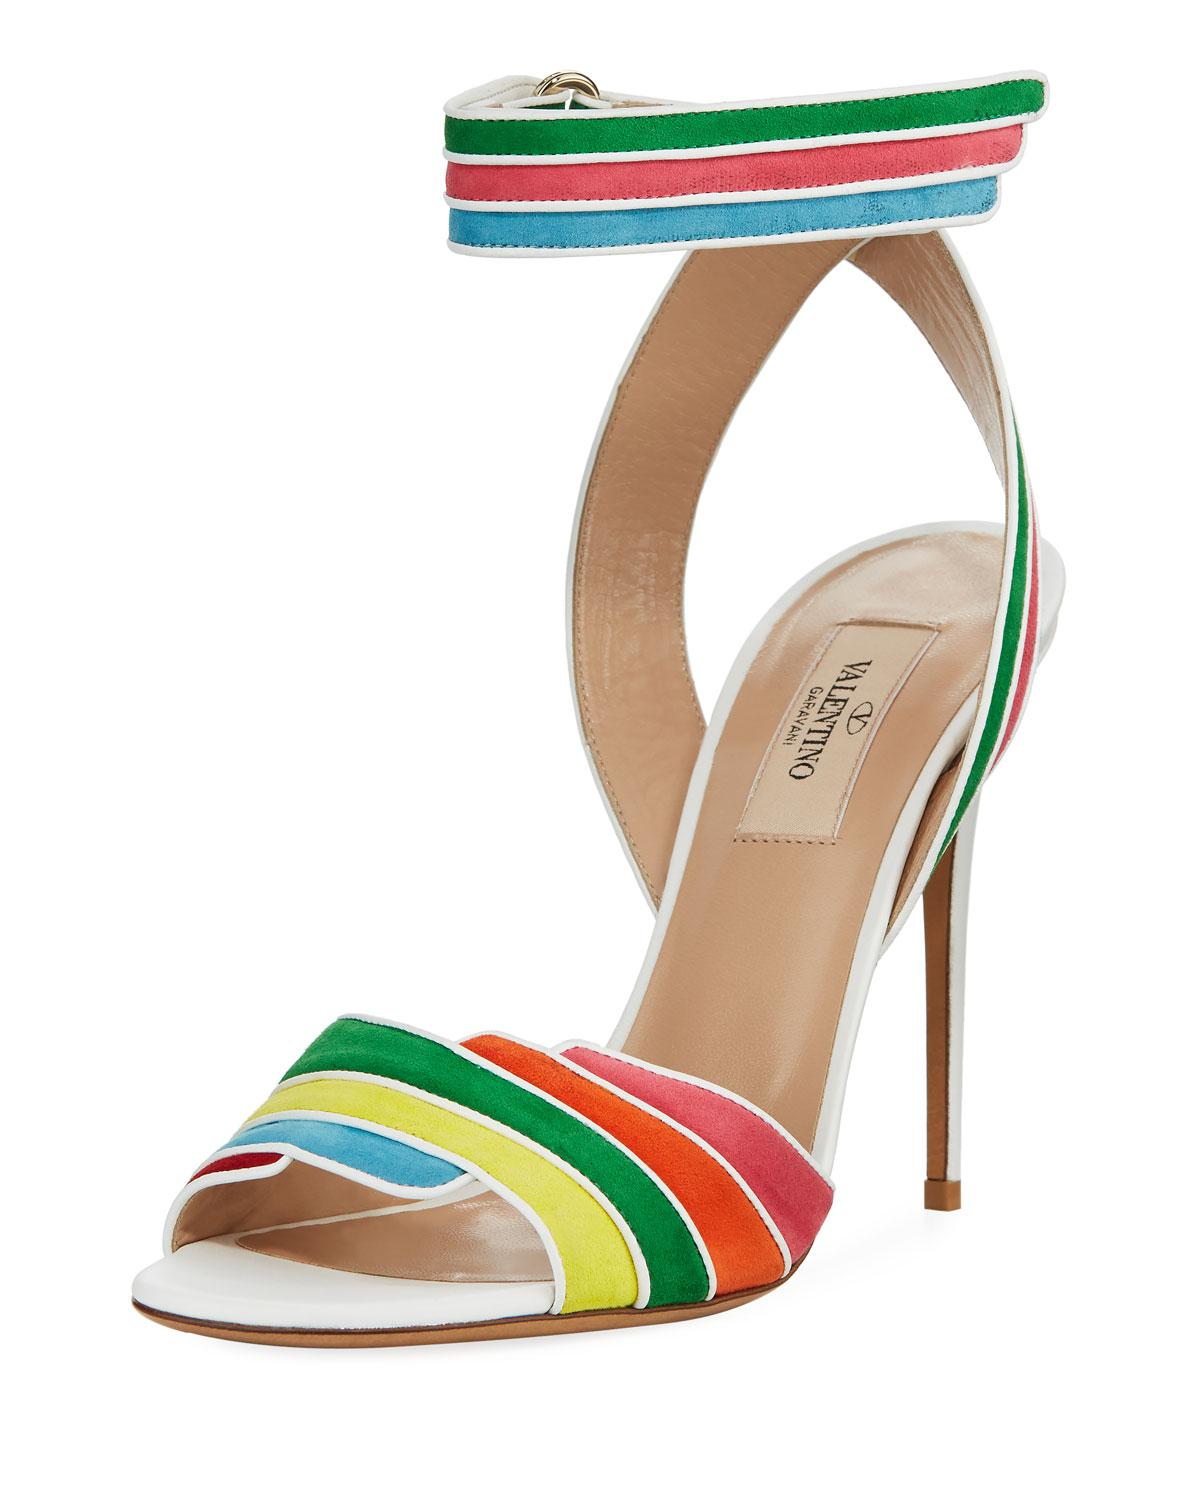 Rainbow Sandals with Ankle Strap in Multi Suede and Nappa Leathers Valentino 2O84yuZl